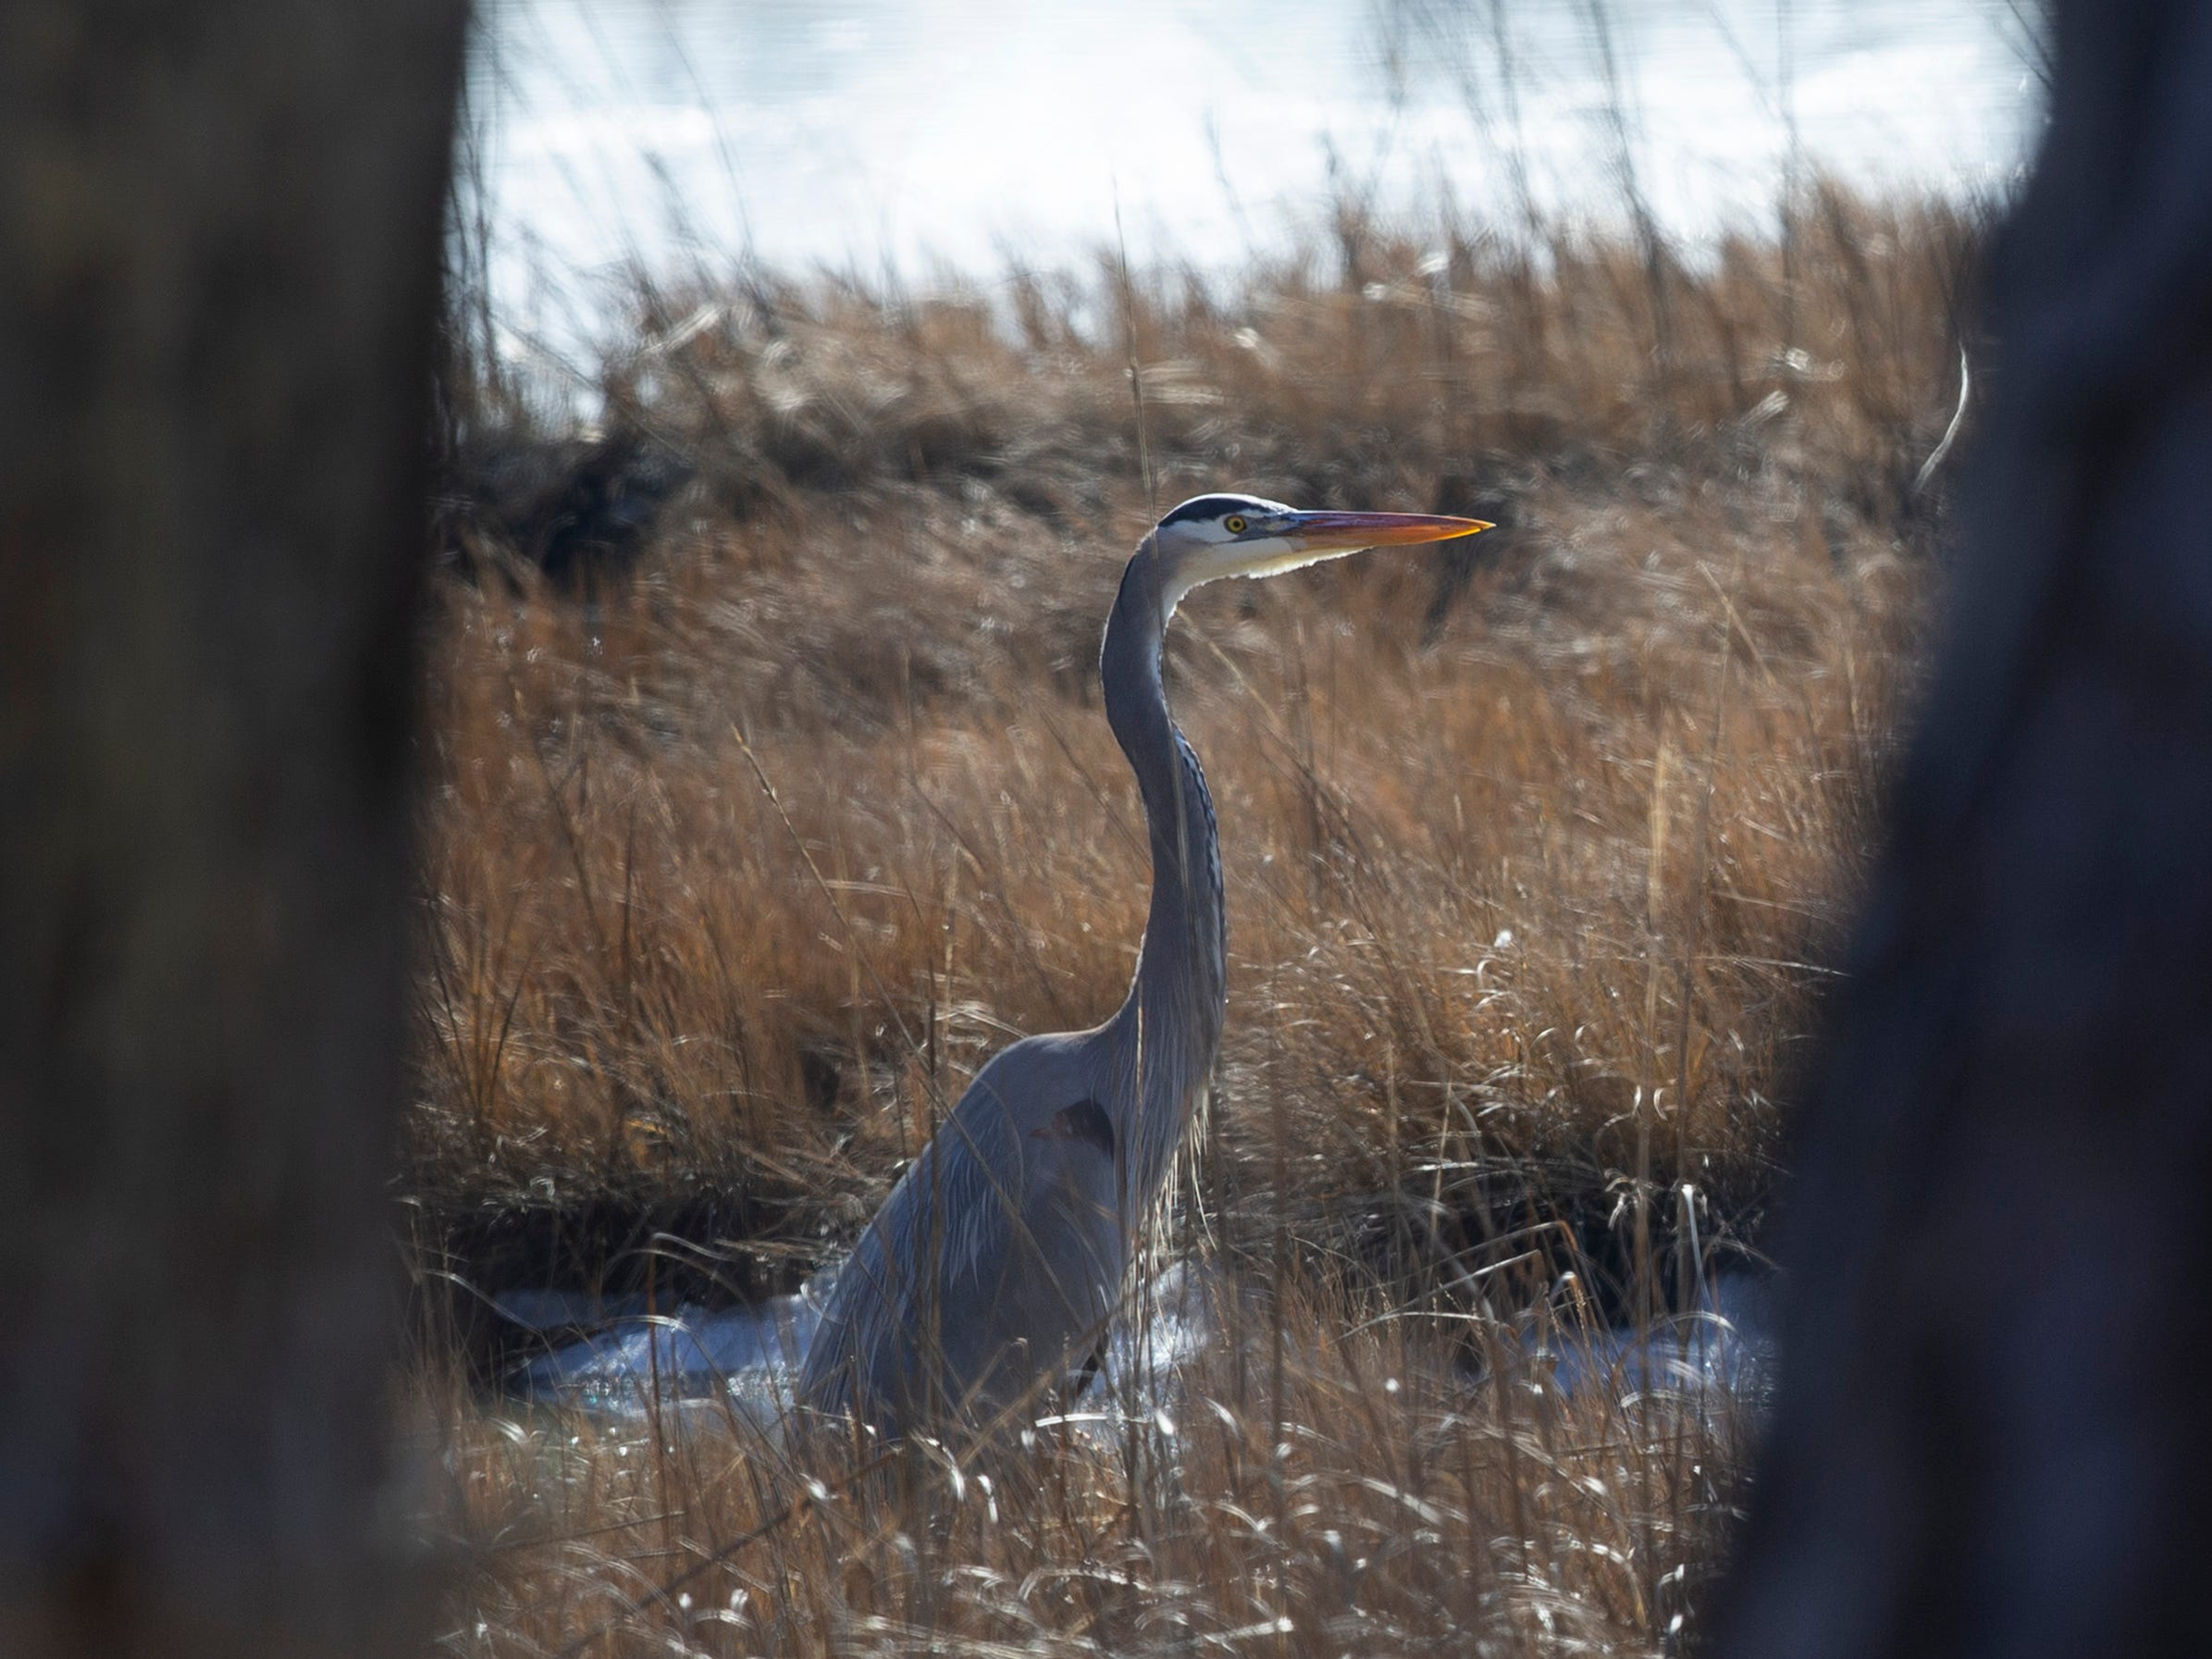 Cattus Island County Park is a 530 acres passive recreation park in Toms River that provides views of the Barnegat Bay and an impressive selection of bird and wildlife.